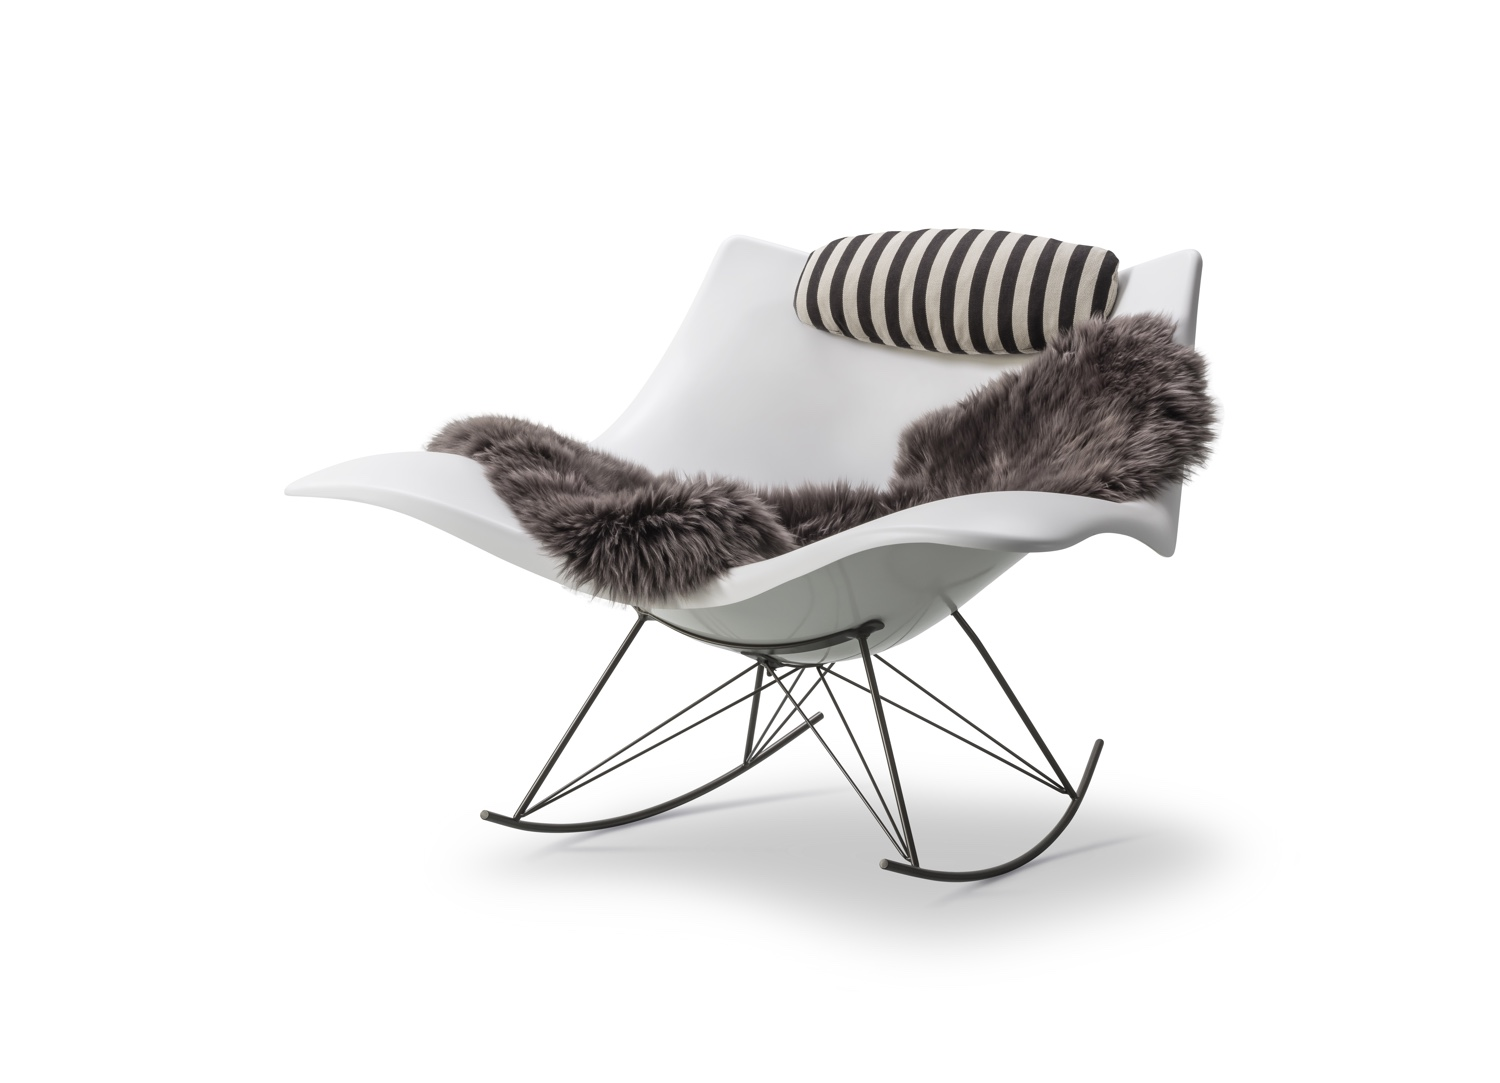 Matt white Stingray & vils fabric cushion